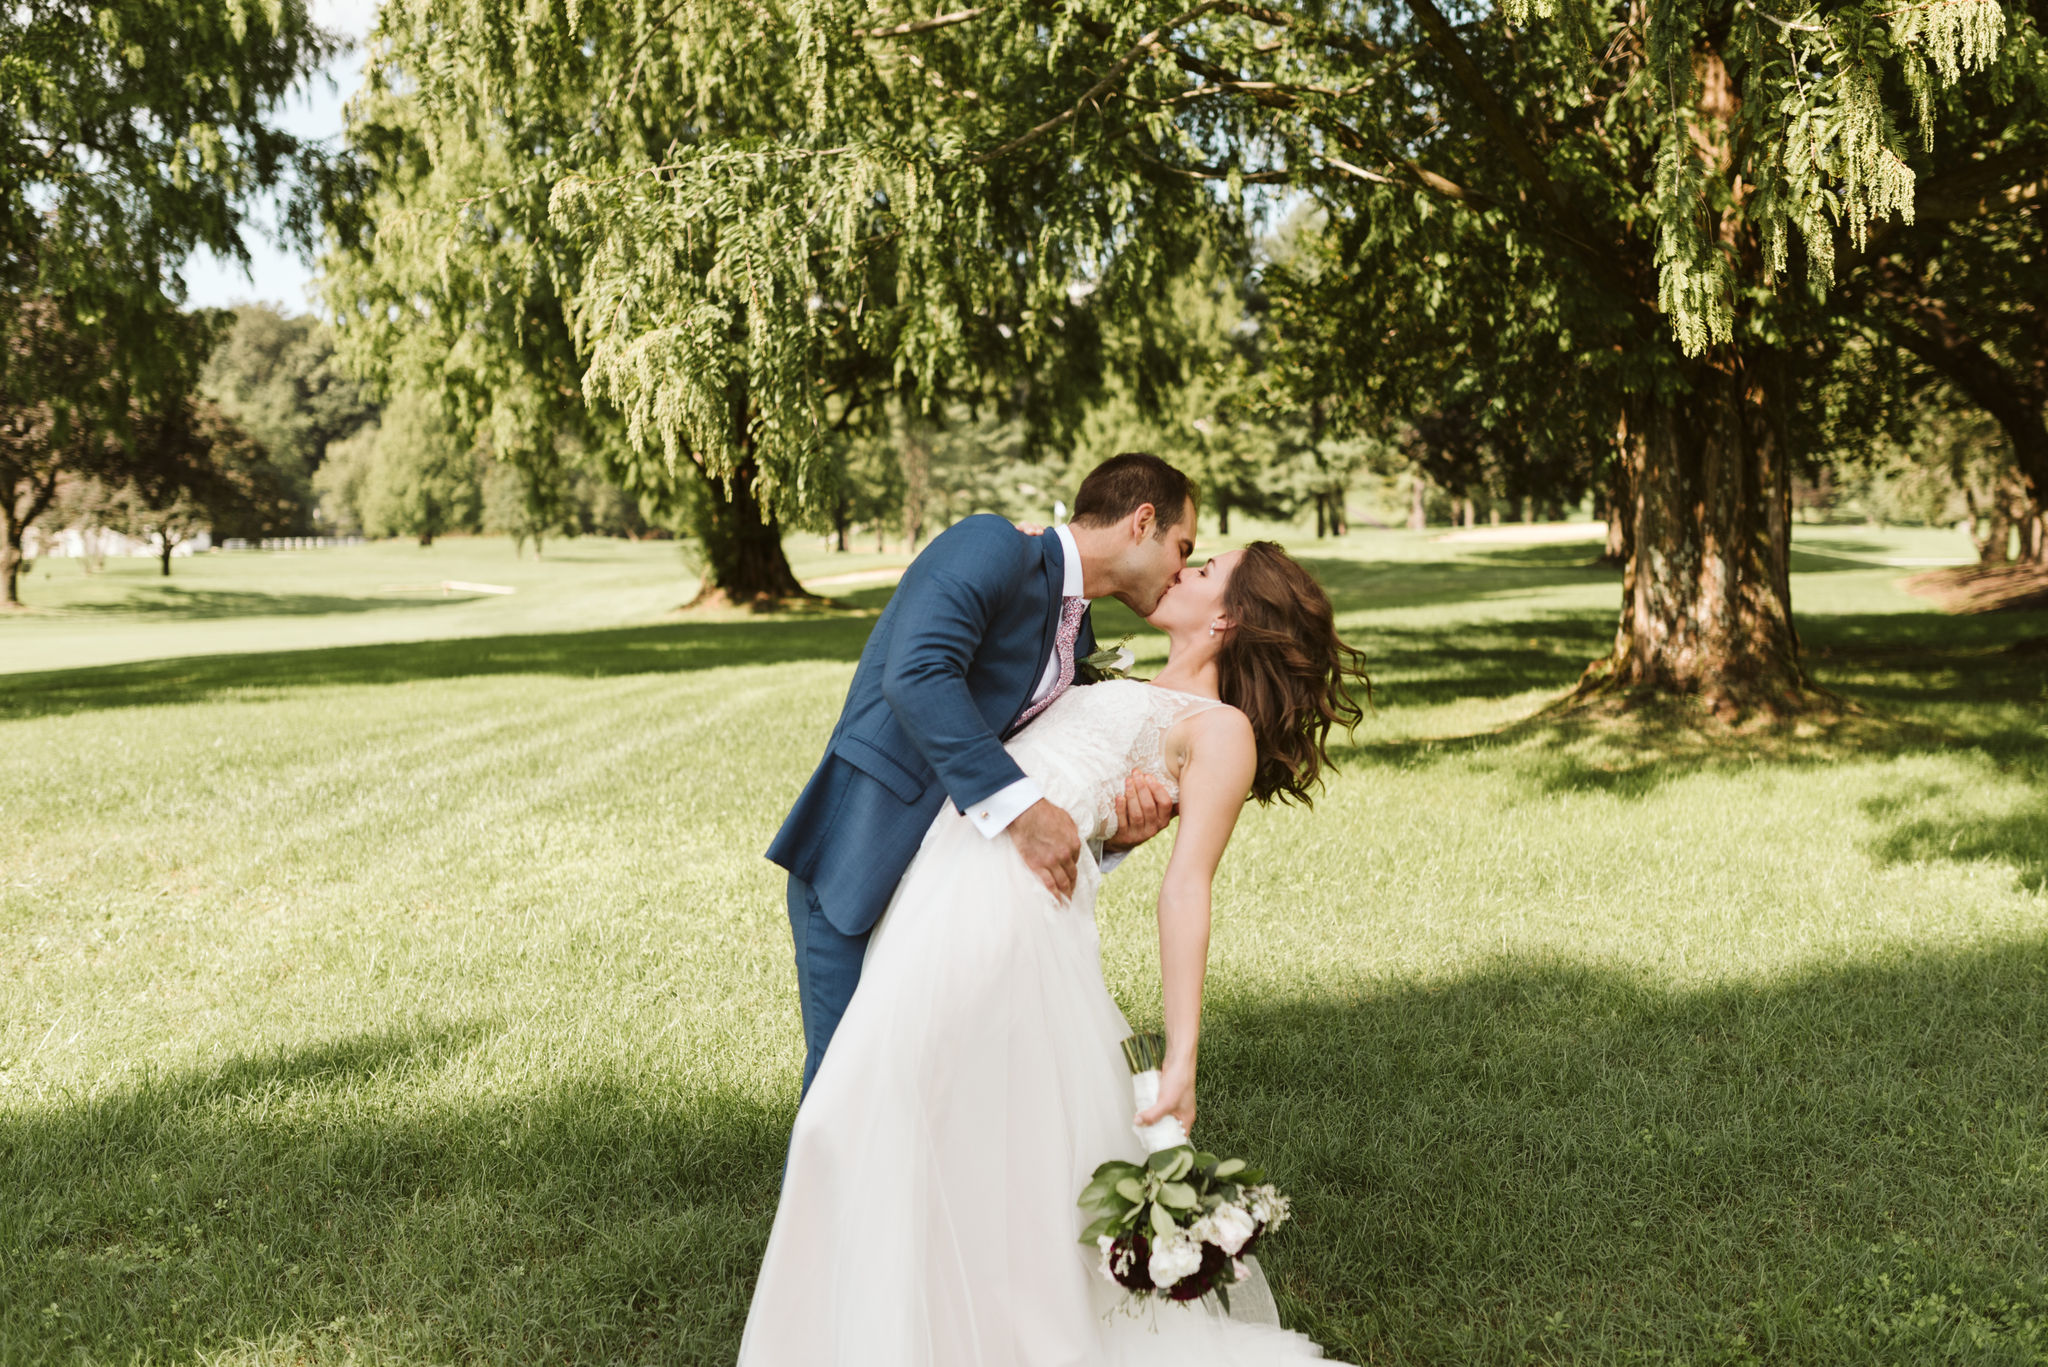 Phoenix Maryland, Baltimore Wedding Photographer, Eagle's Nest Country Club, Classic, Romantic, Groom Dipping the Bride, Couple Kissing in the Sun, BHLDN Dress